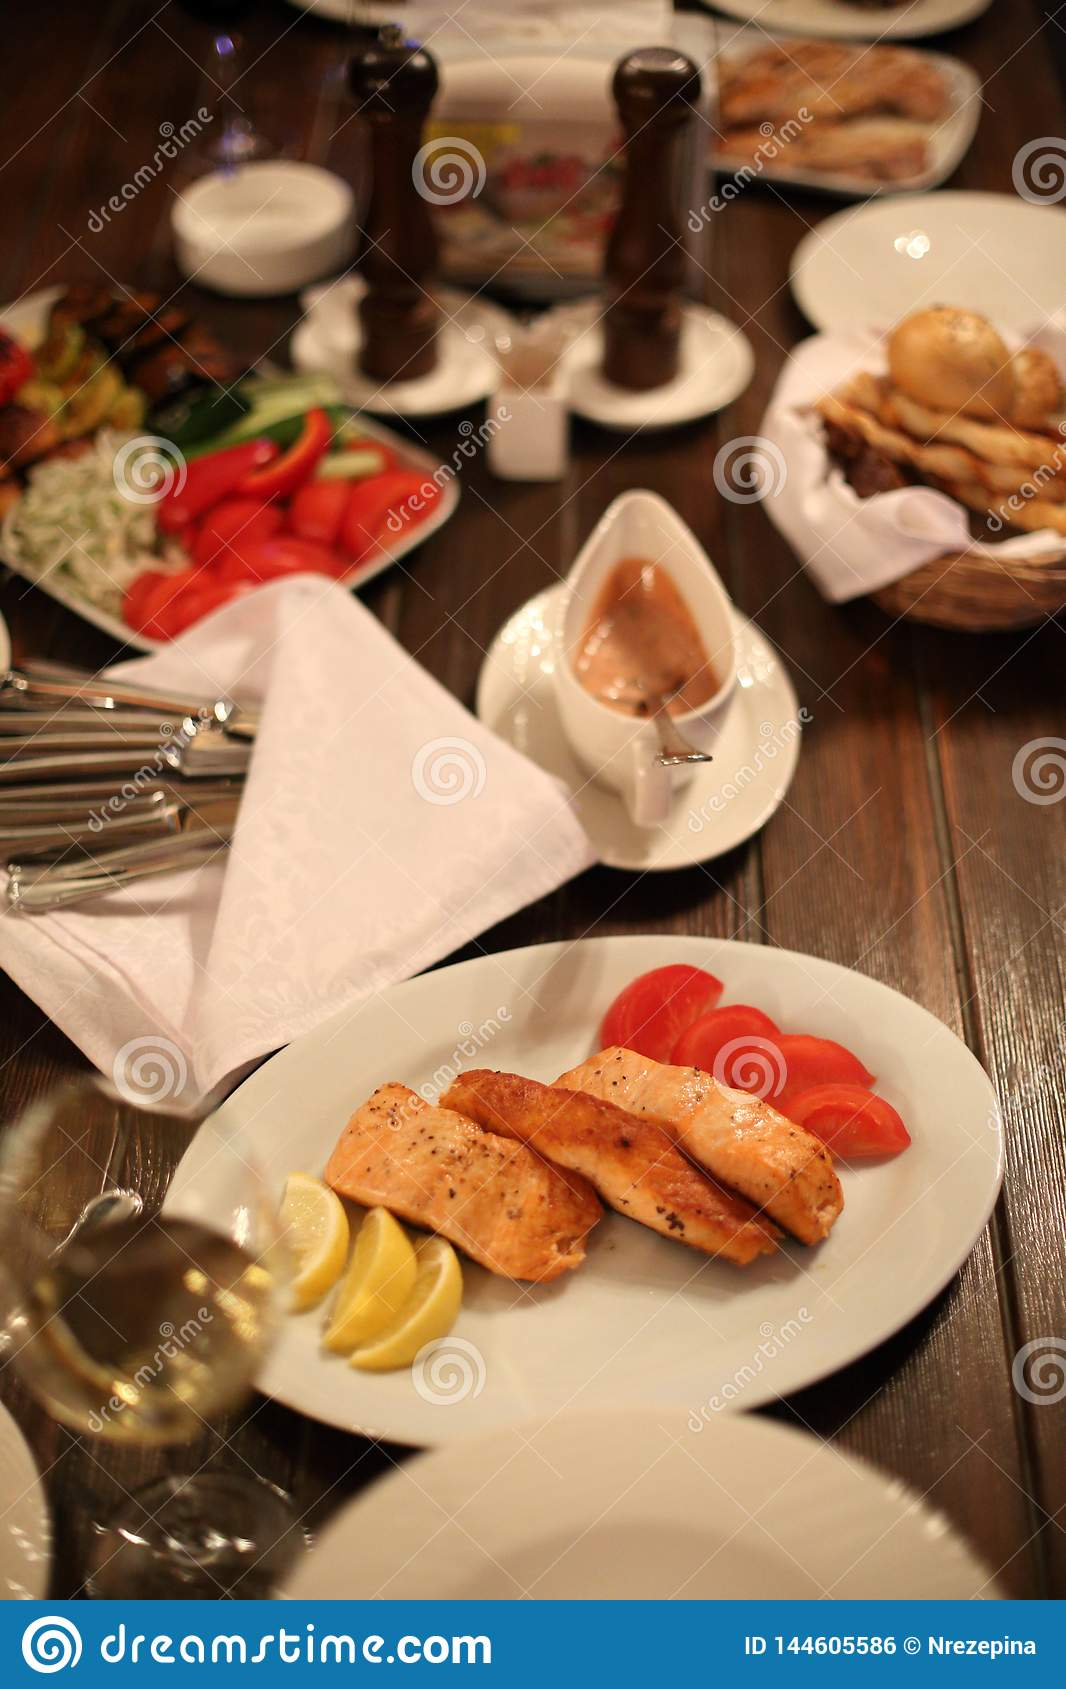 Pieces of grilled salmon on a plate with lemon on the decorated table